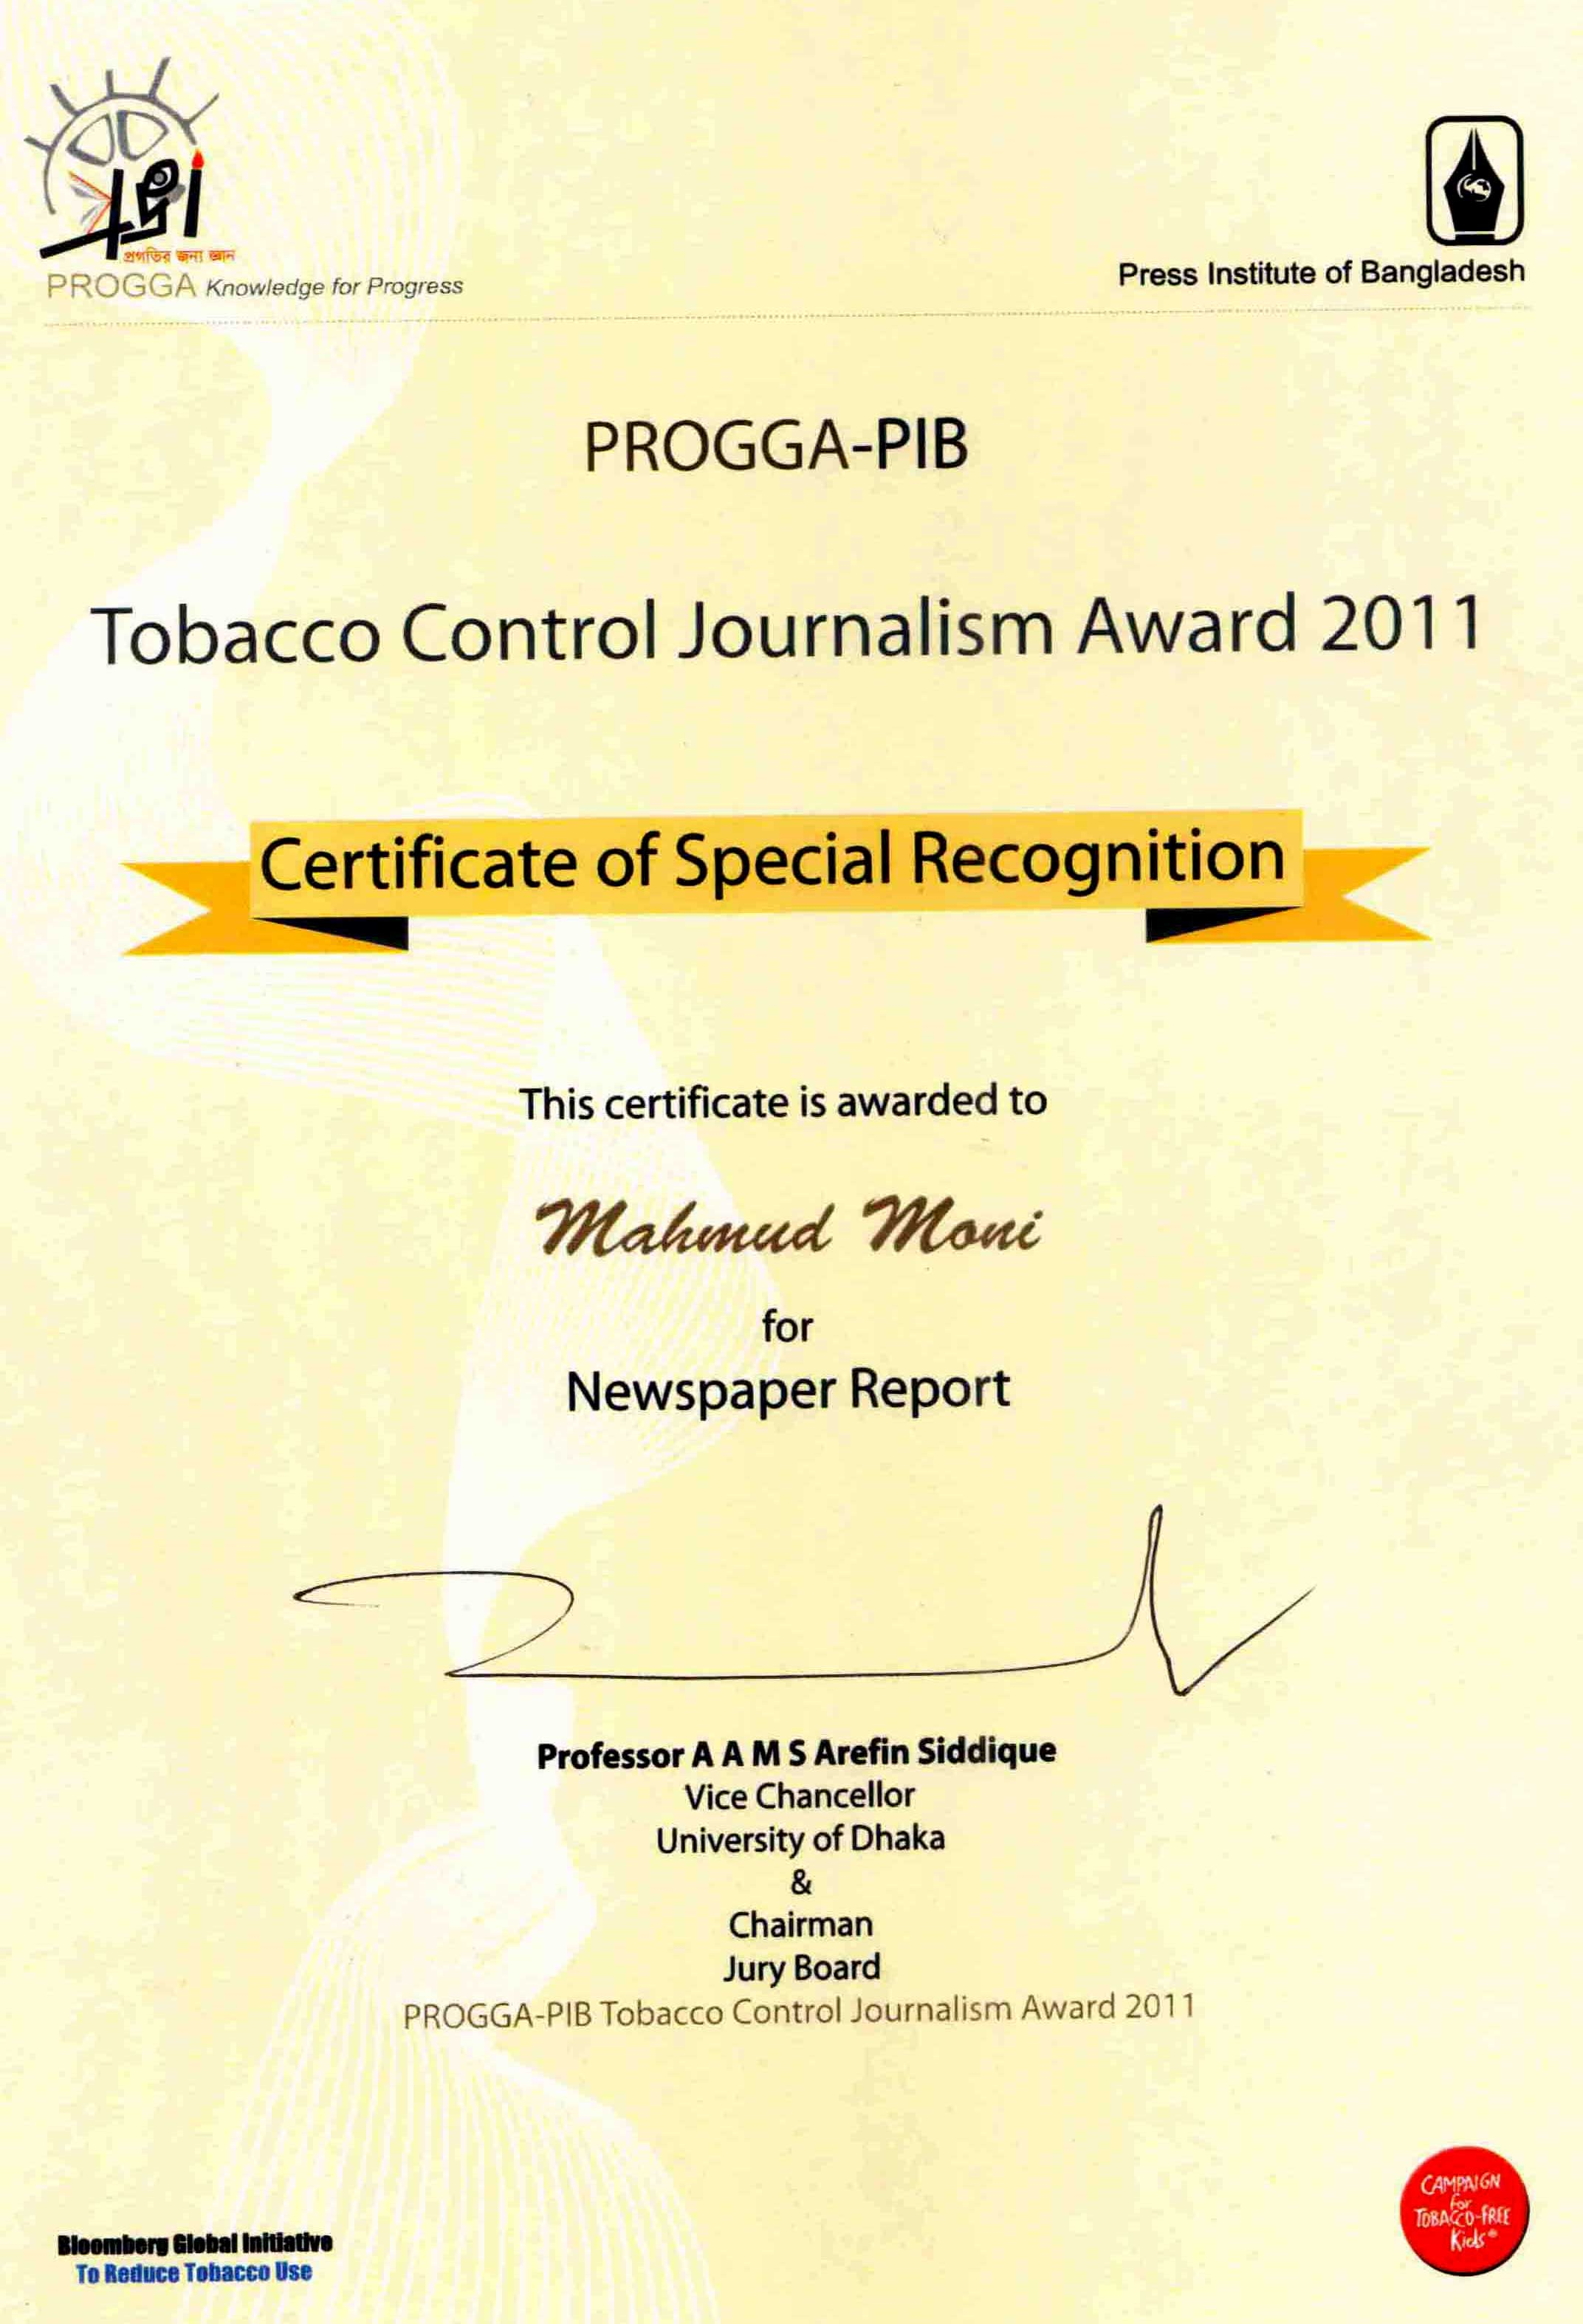 PROGGA-Press Institute of Bangladesh (PIB) TC Journalism Award